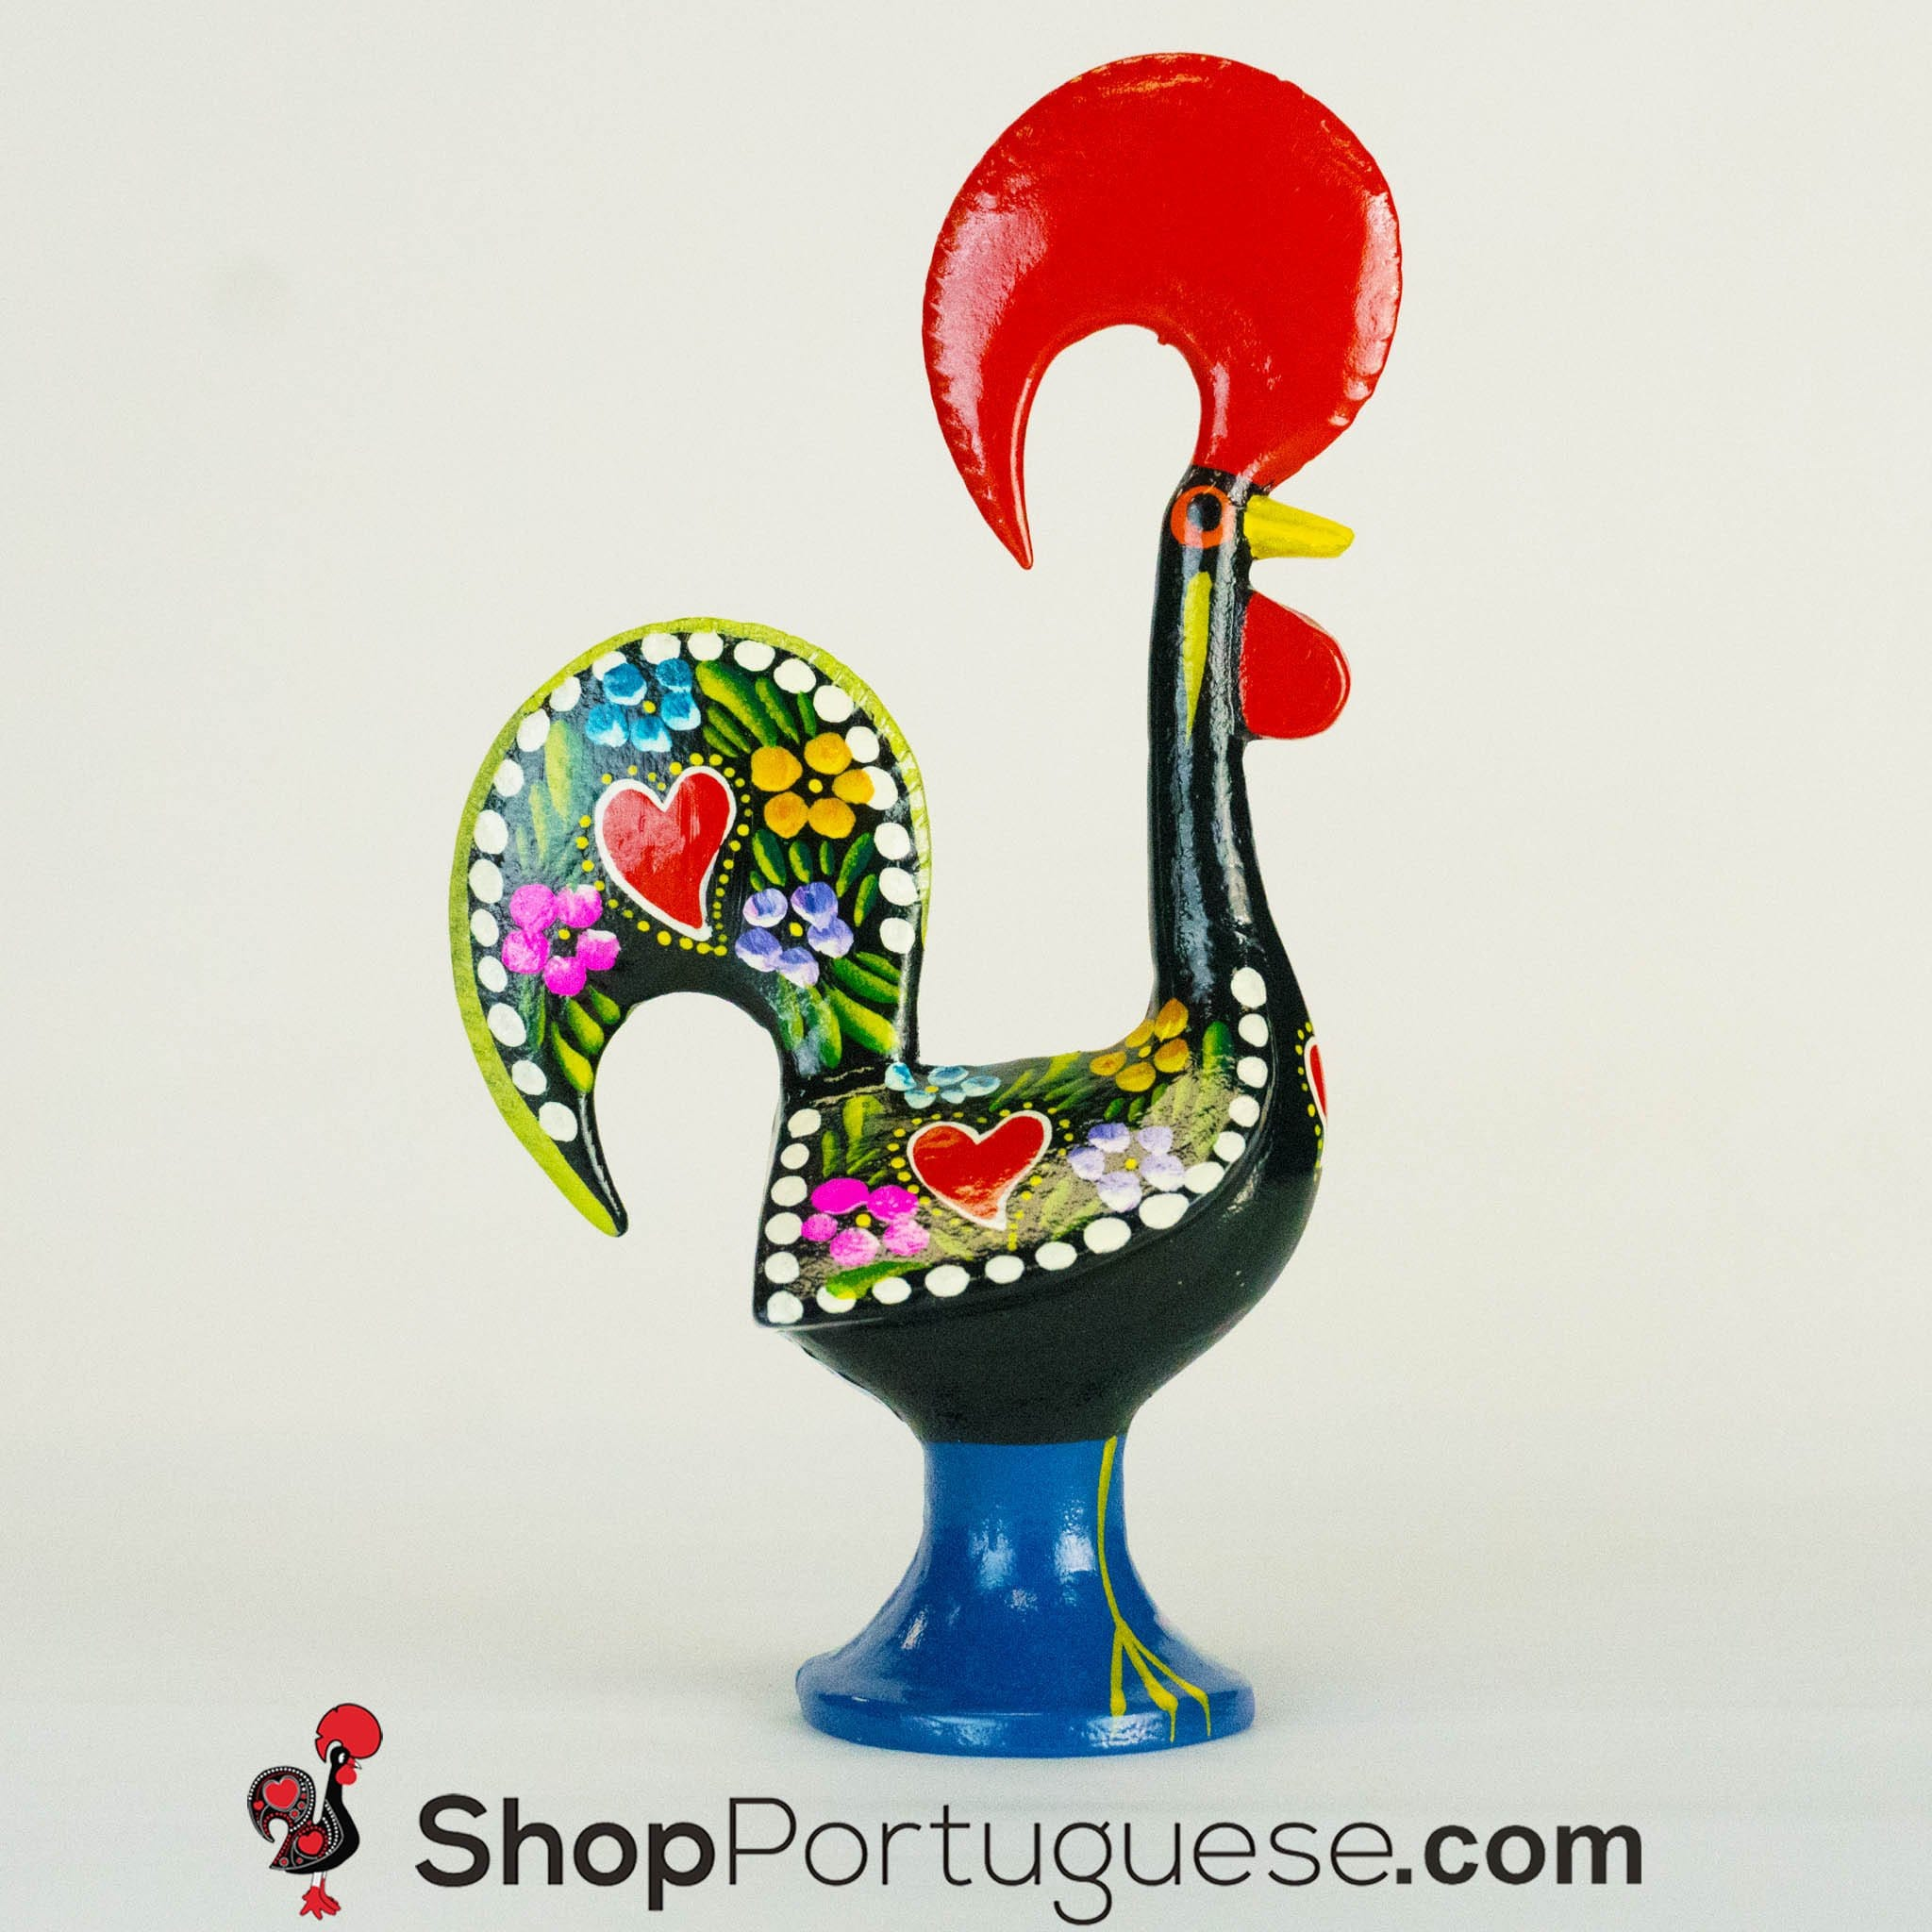 Barcelos Rooster 8 Traditional Figurine Metal Shop Portuguese